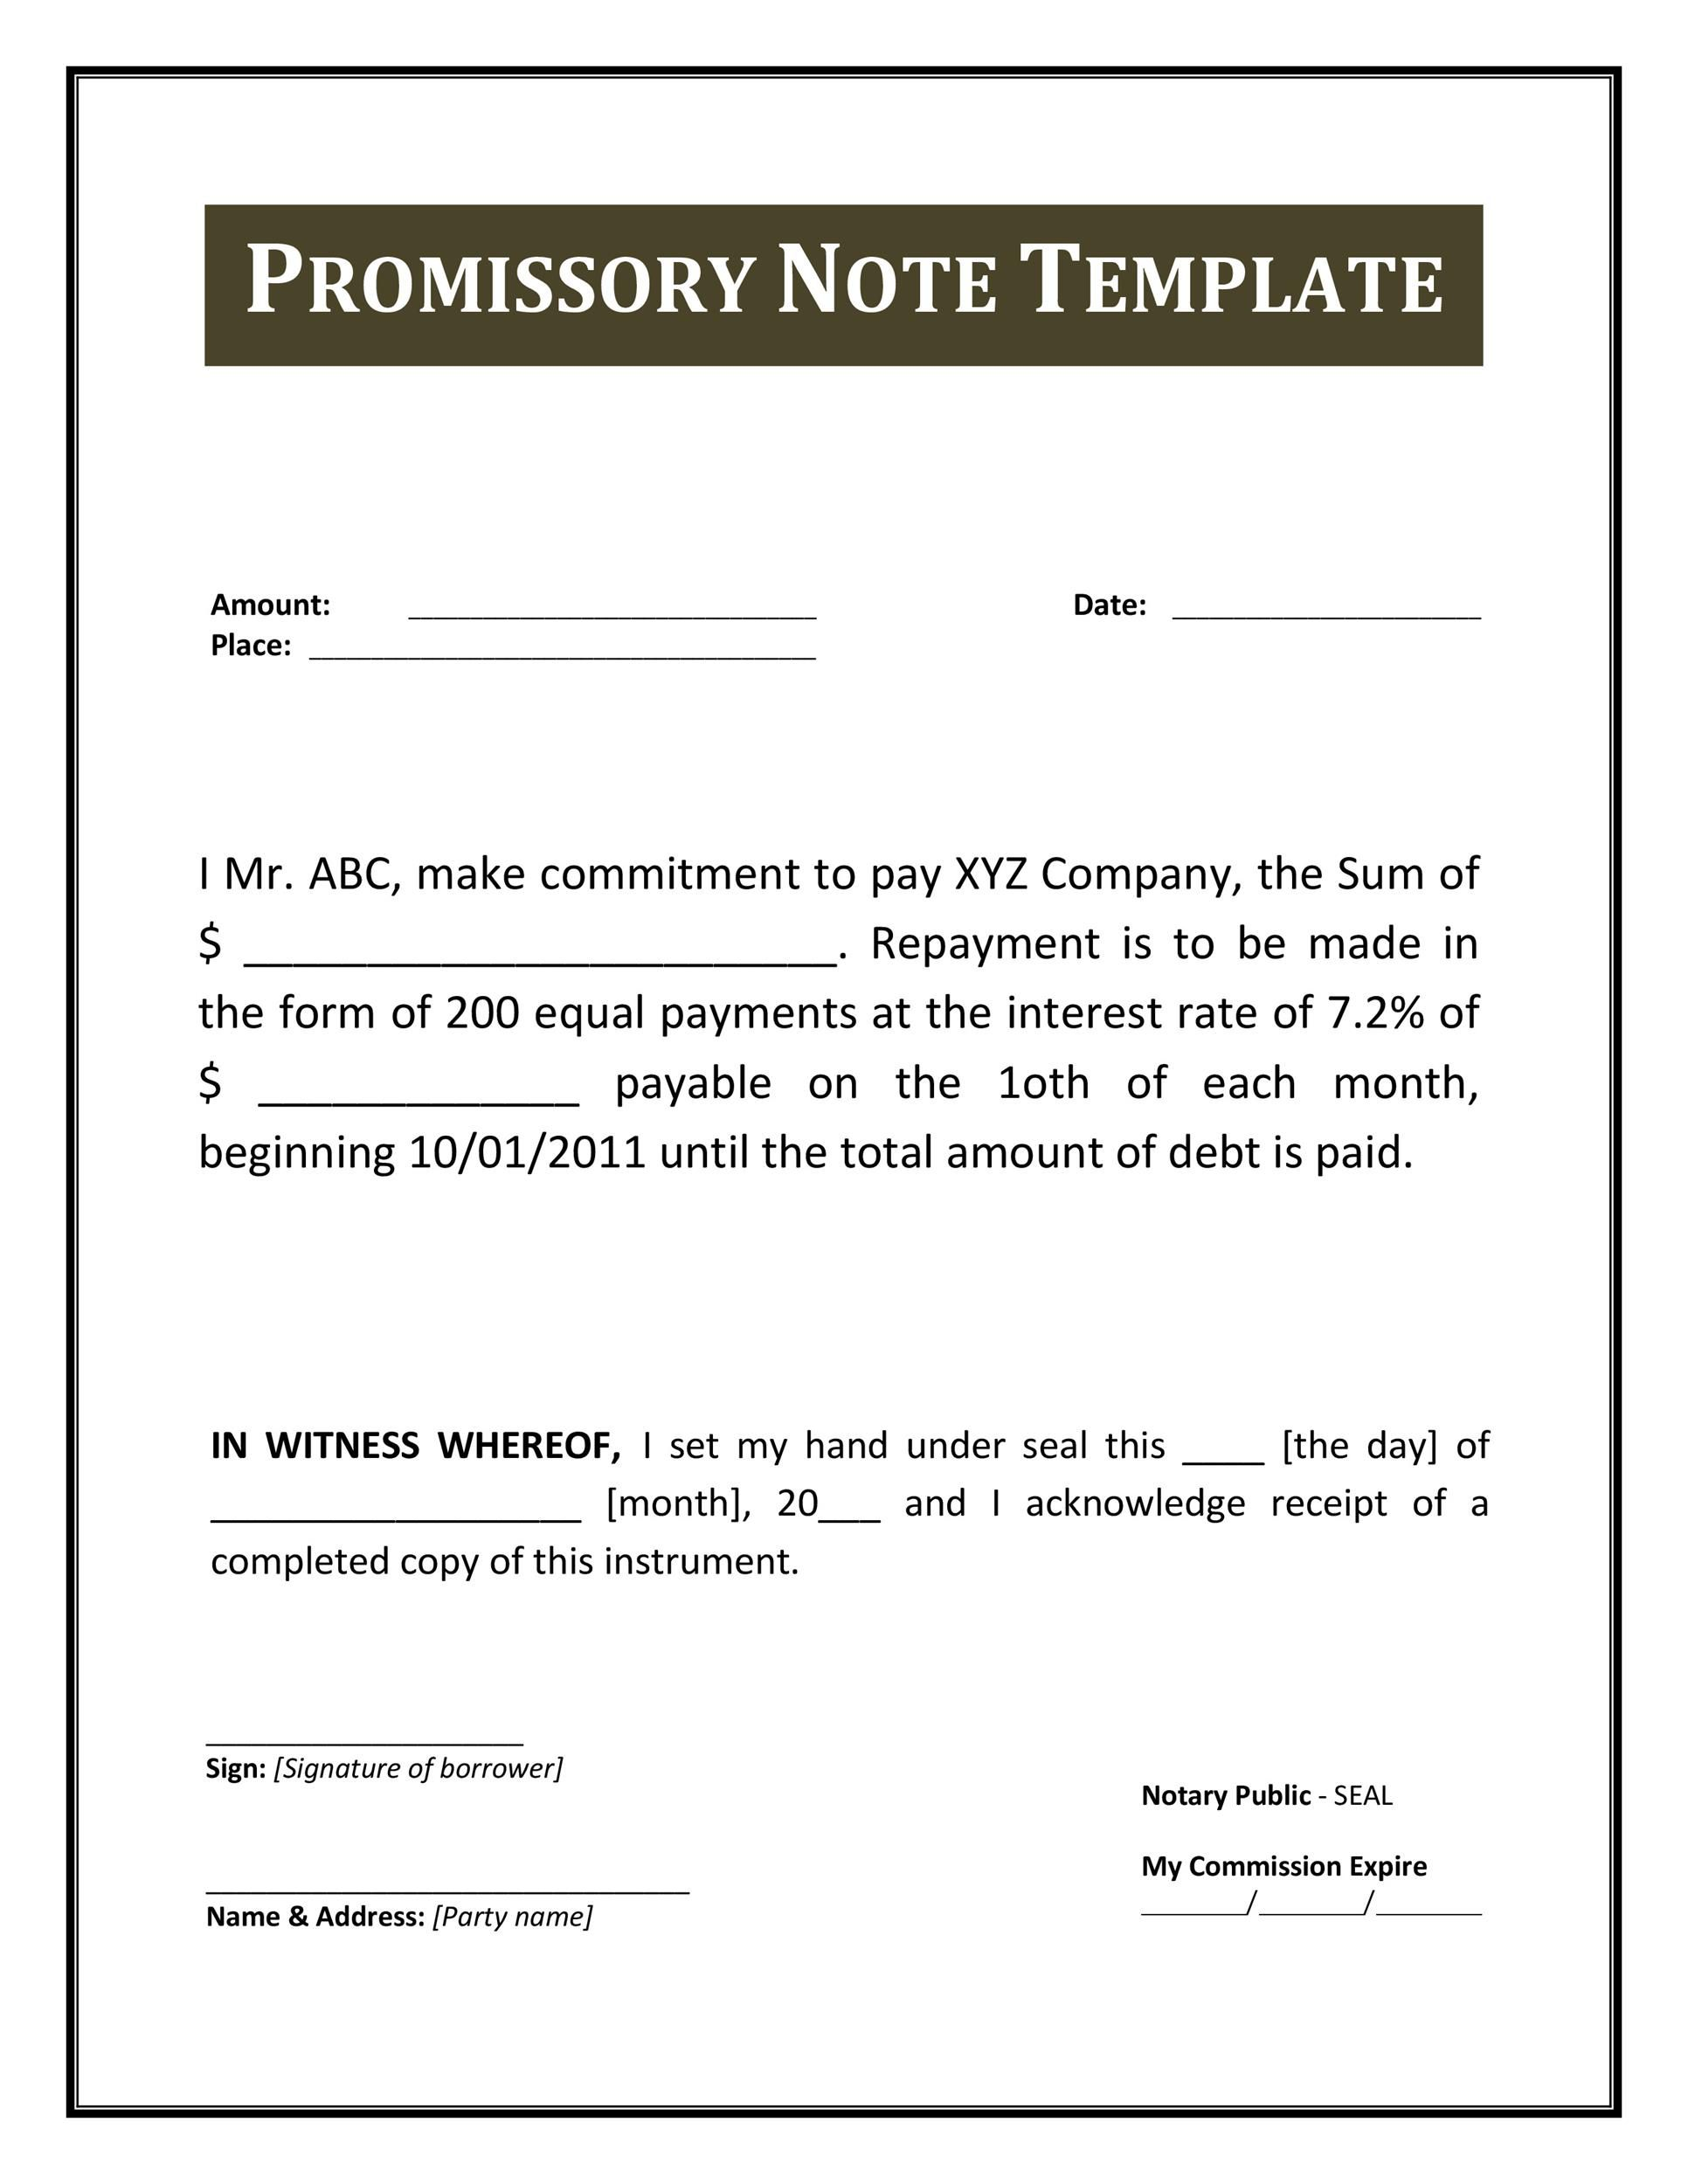 005 Marvelou Loan Promissory Note Template Highest Quality  Ppp Form Personal Format StudentFull